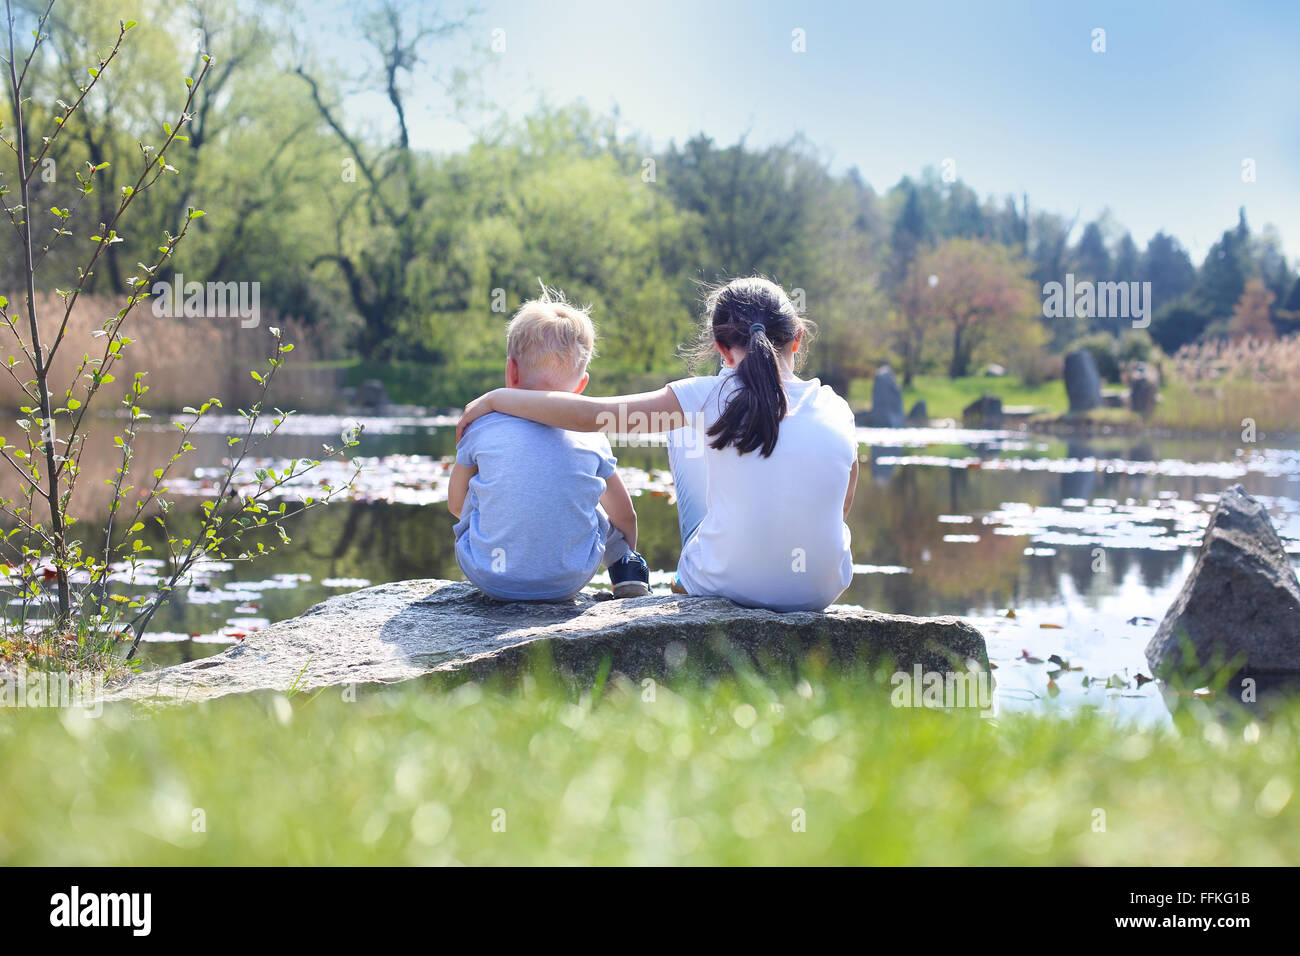 Holiday time relaxing by the water. Two children, older sister and younger brother sitting on the shore of the lake - Stock Image